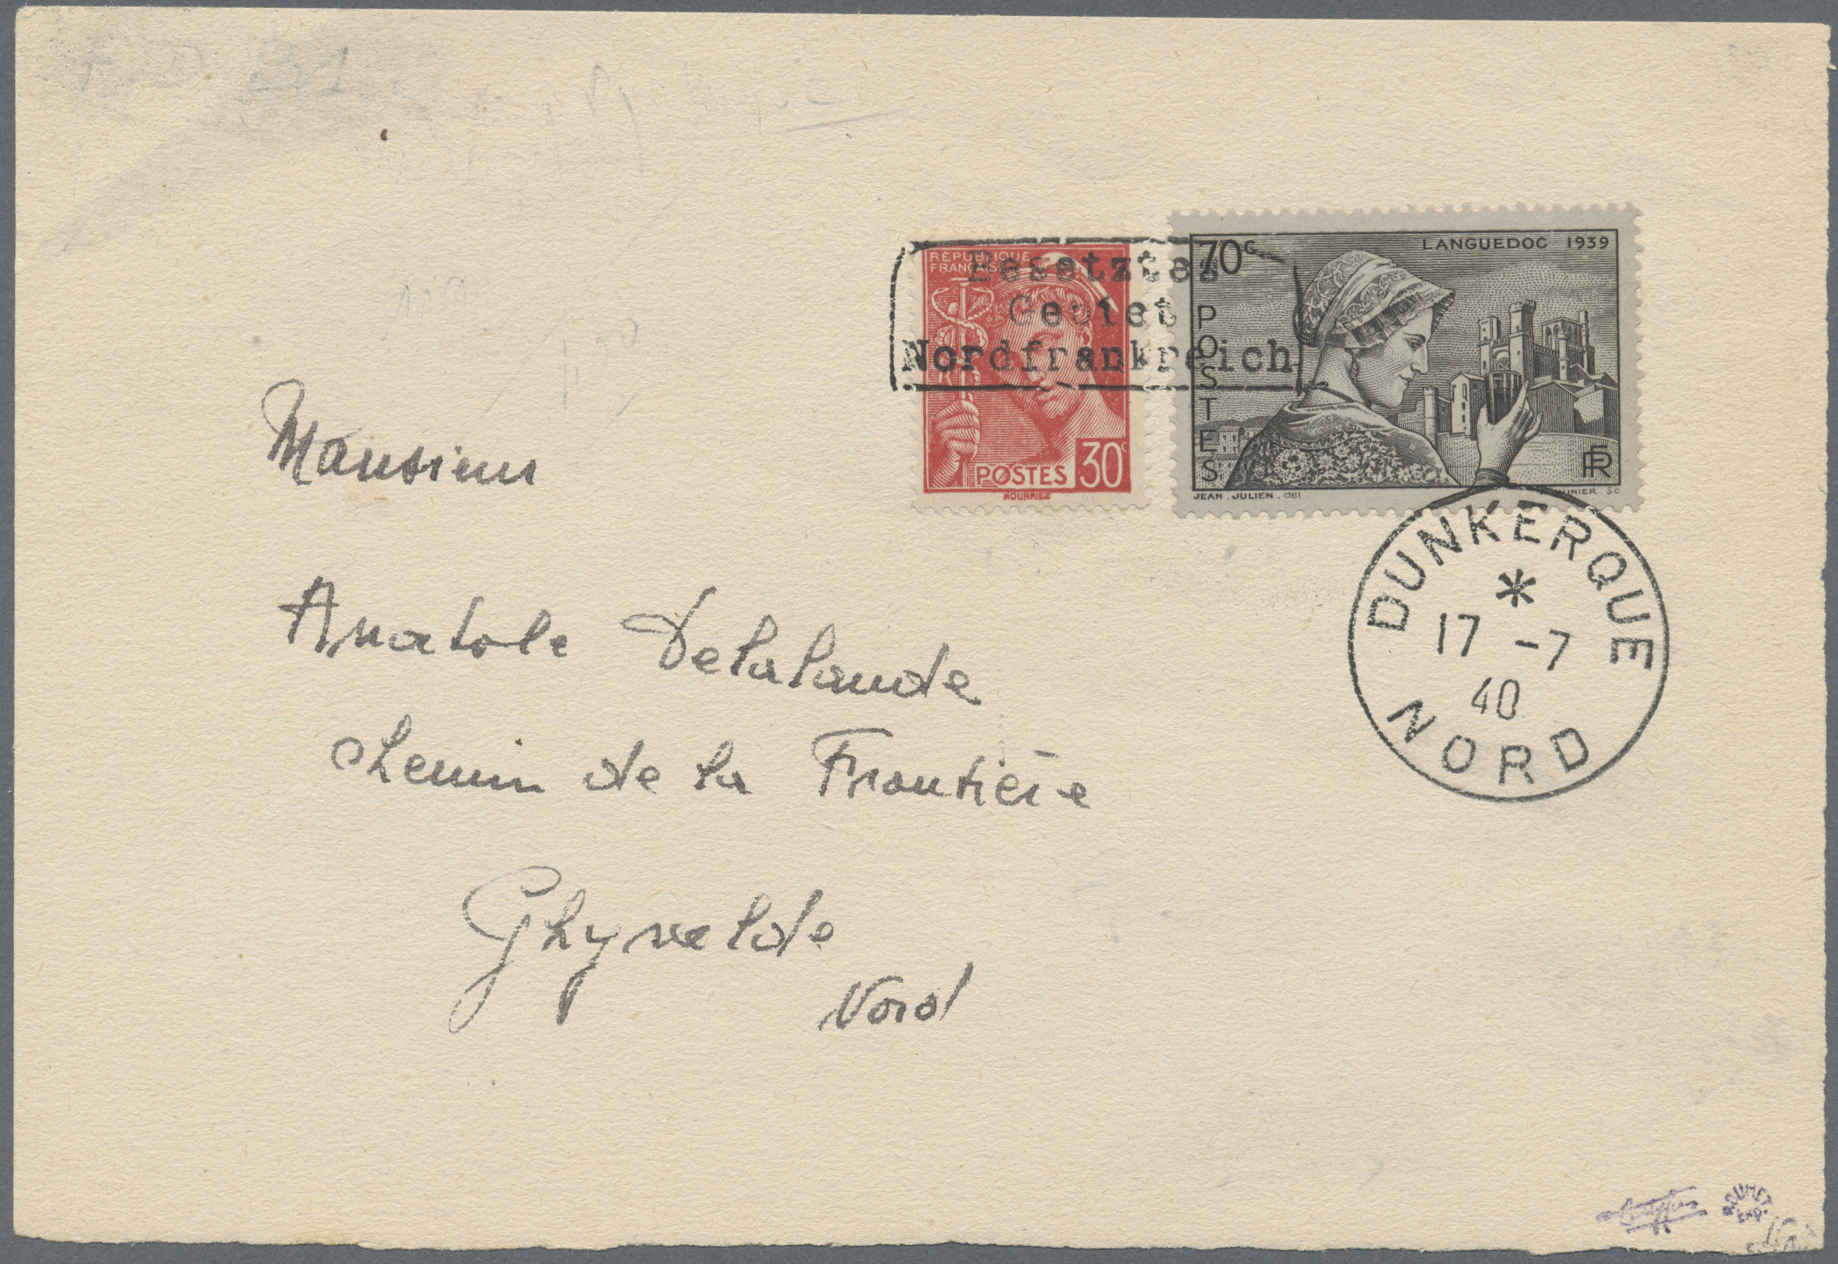 Lot 23287 - Dt. Besetzung II WK - Frankreich - Dünkirchen  -  Auktionshaus Christoph Gärtner GmbH & Co. KG Single lots Germany + Picture Postcards. Auction #39 Day 5